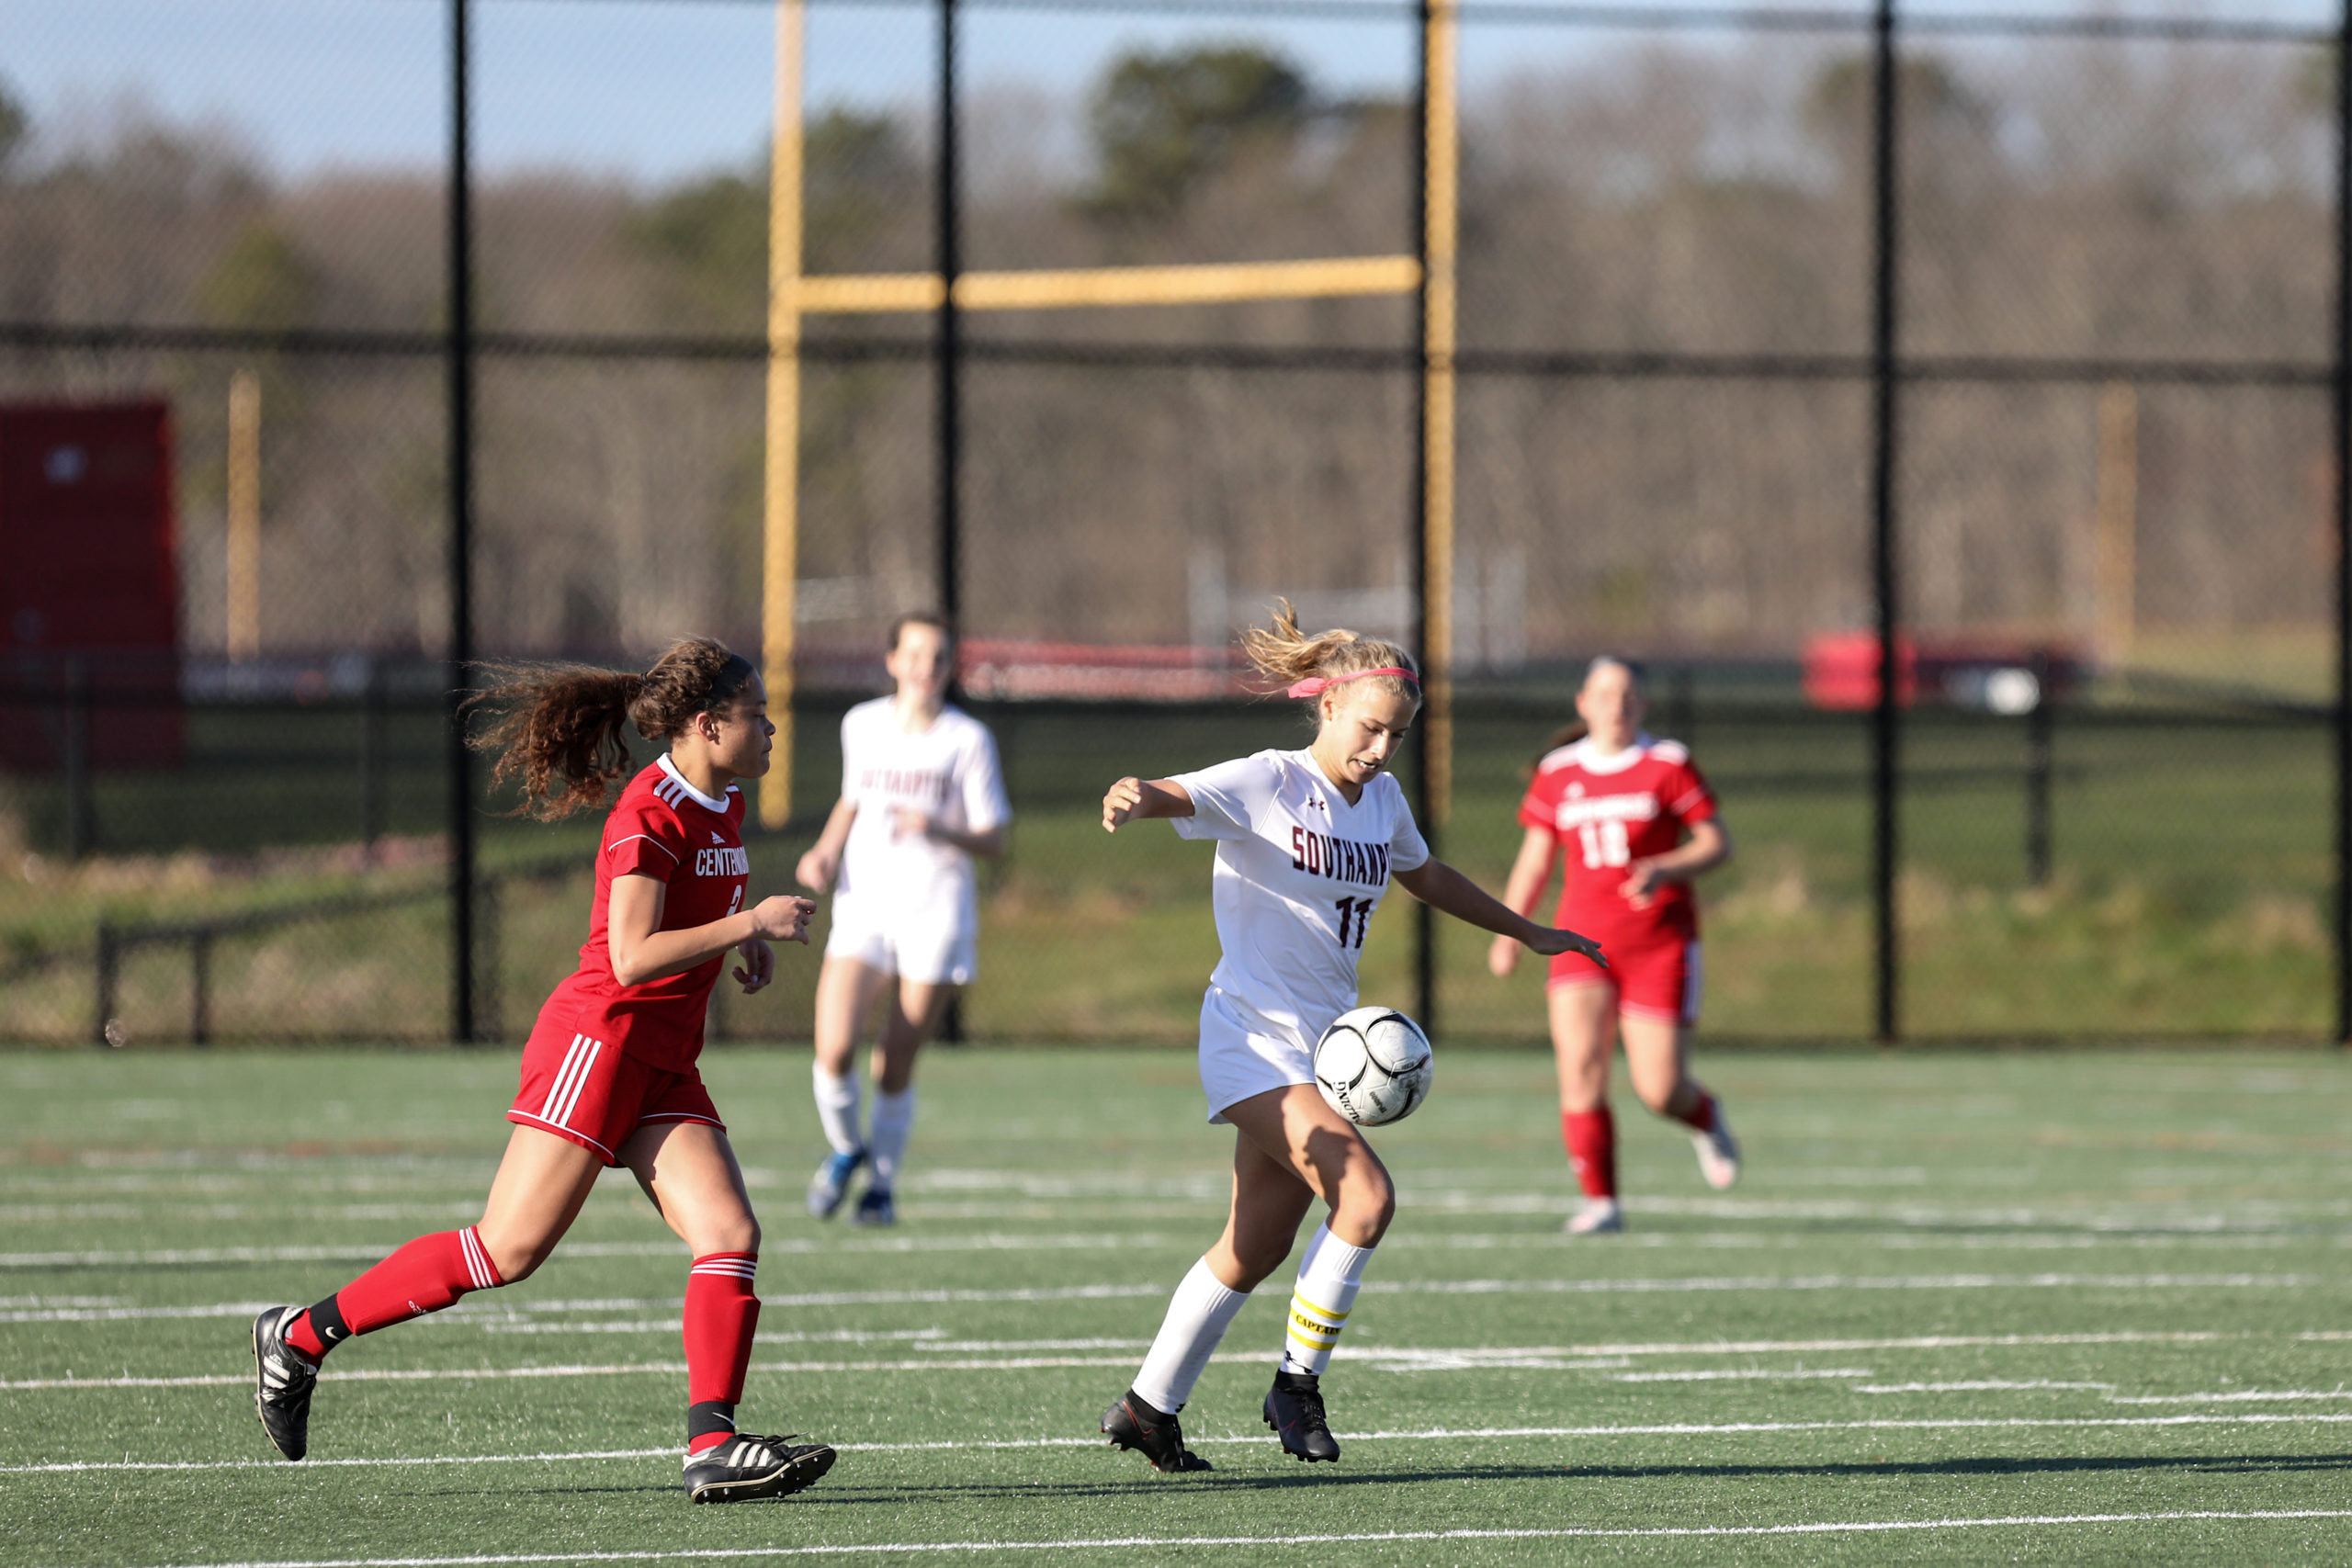 Southampton junior Charlotte Cardel carries the ball across the field.